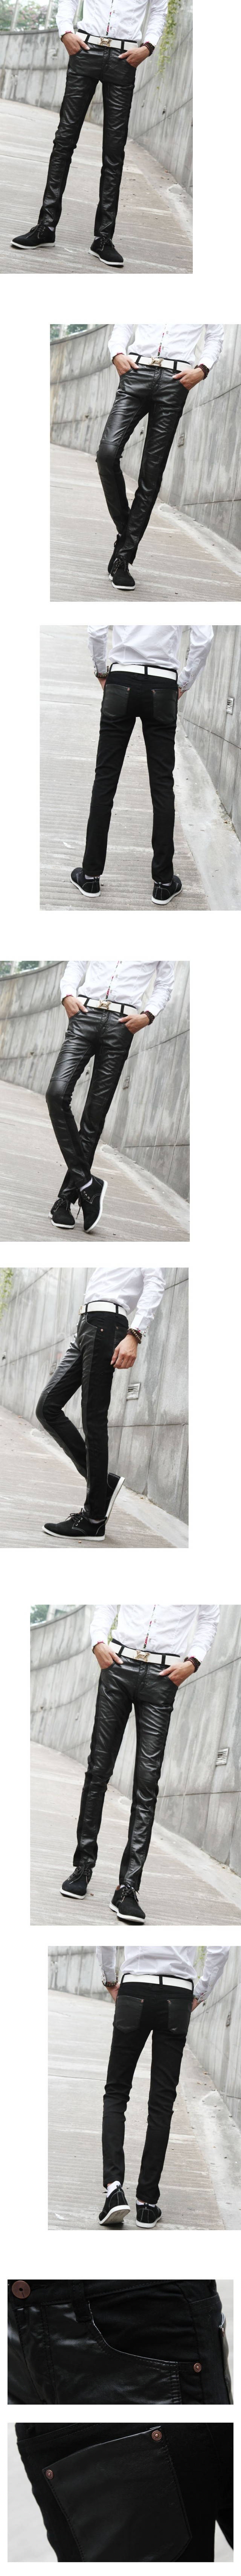 Fashion Slim Casual Breathable Leather & Denim Jointing Men Pants